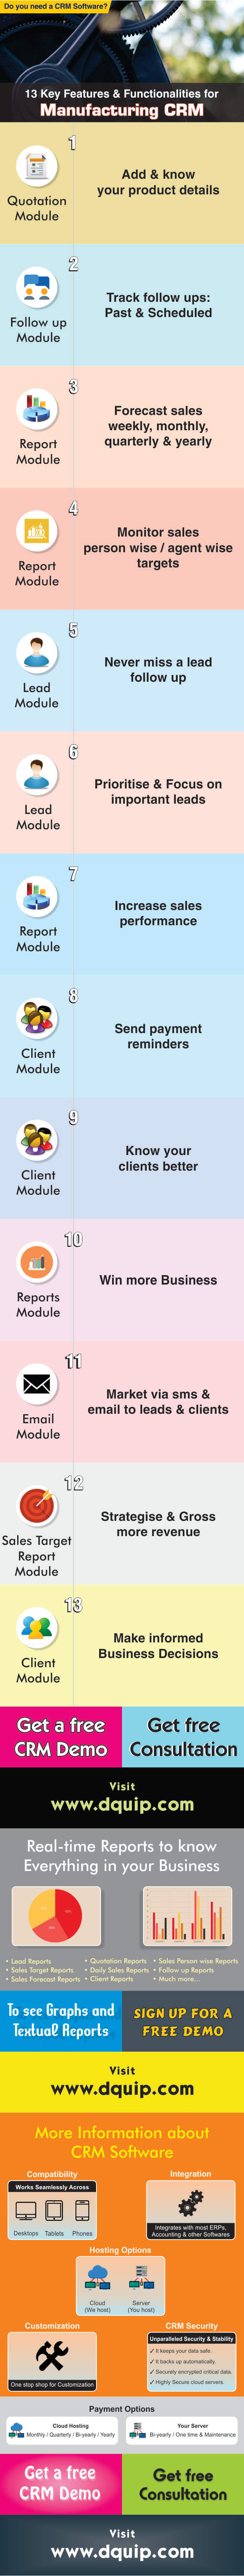 Infographic on Features and Functionalities of Manufacturing CRM